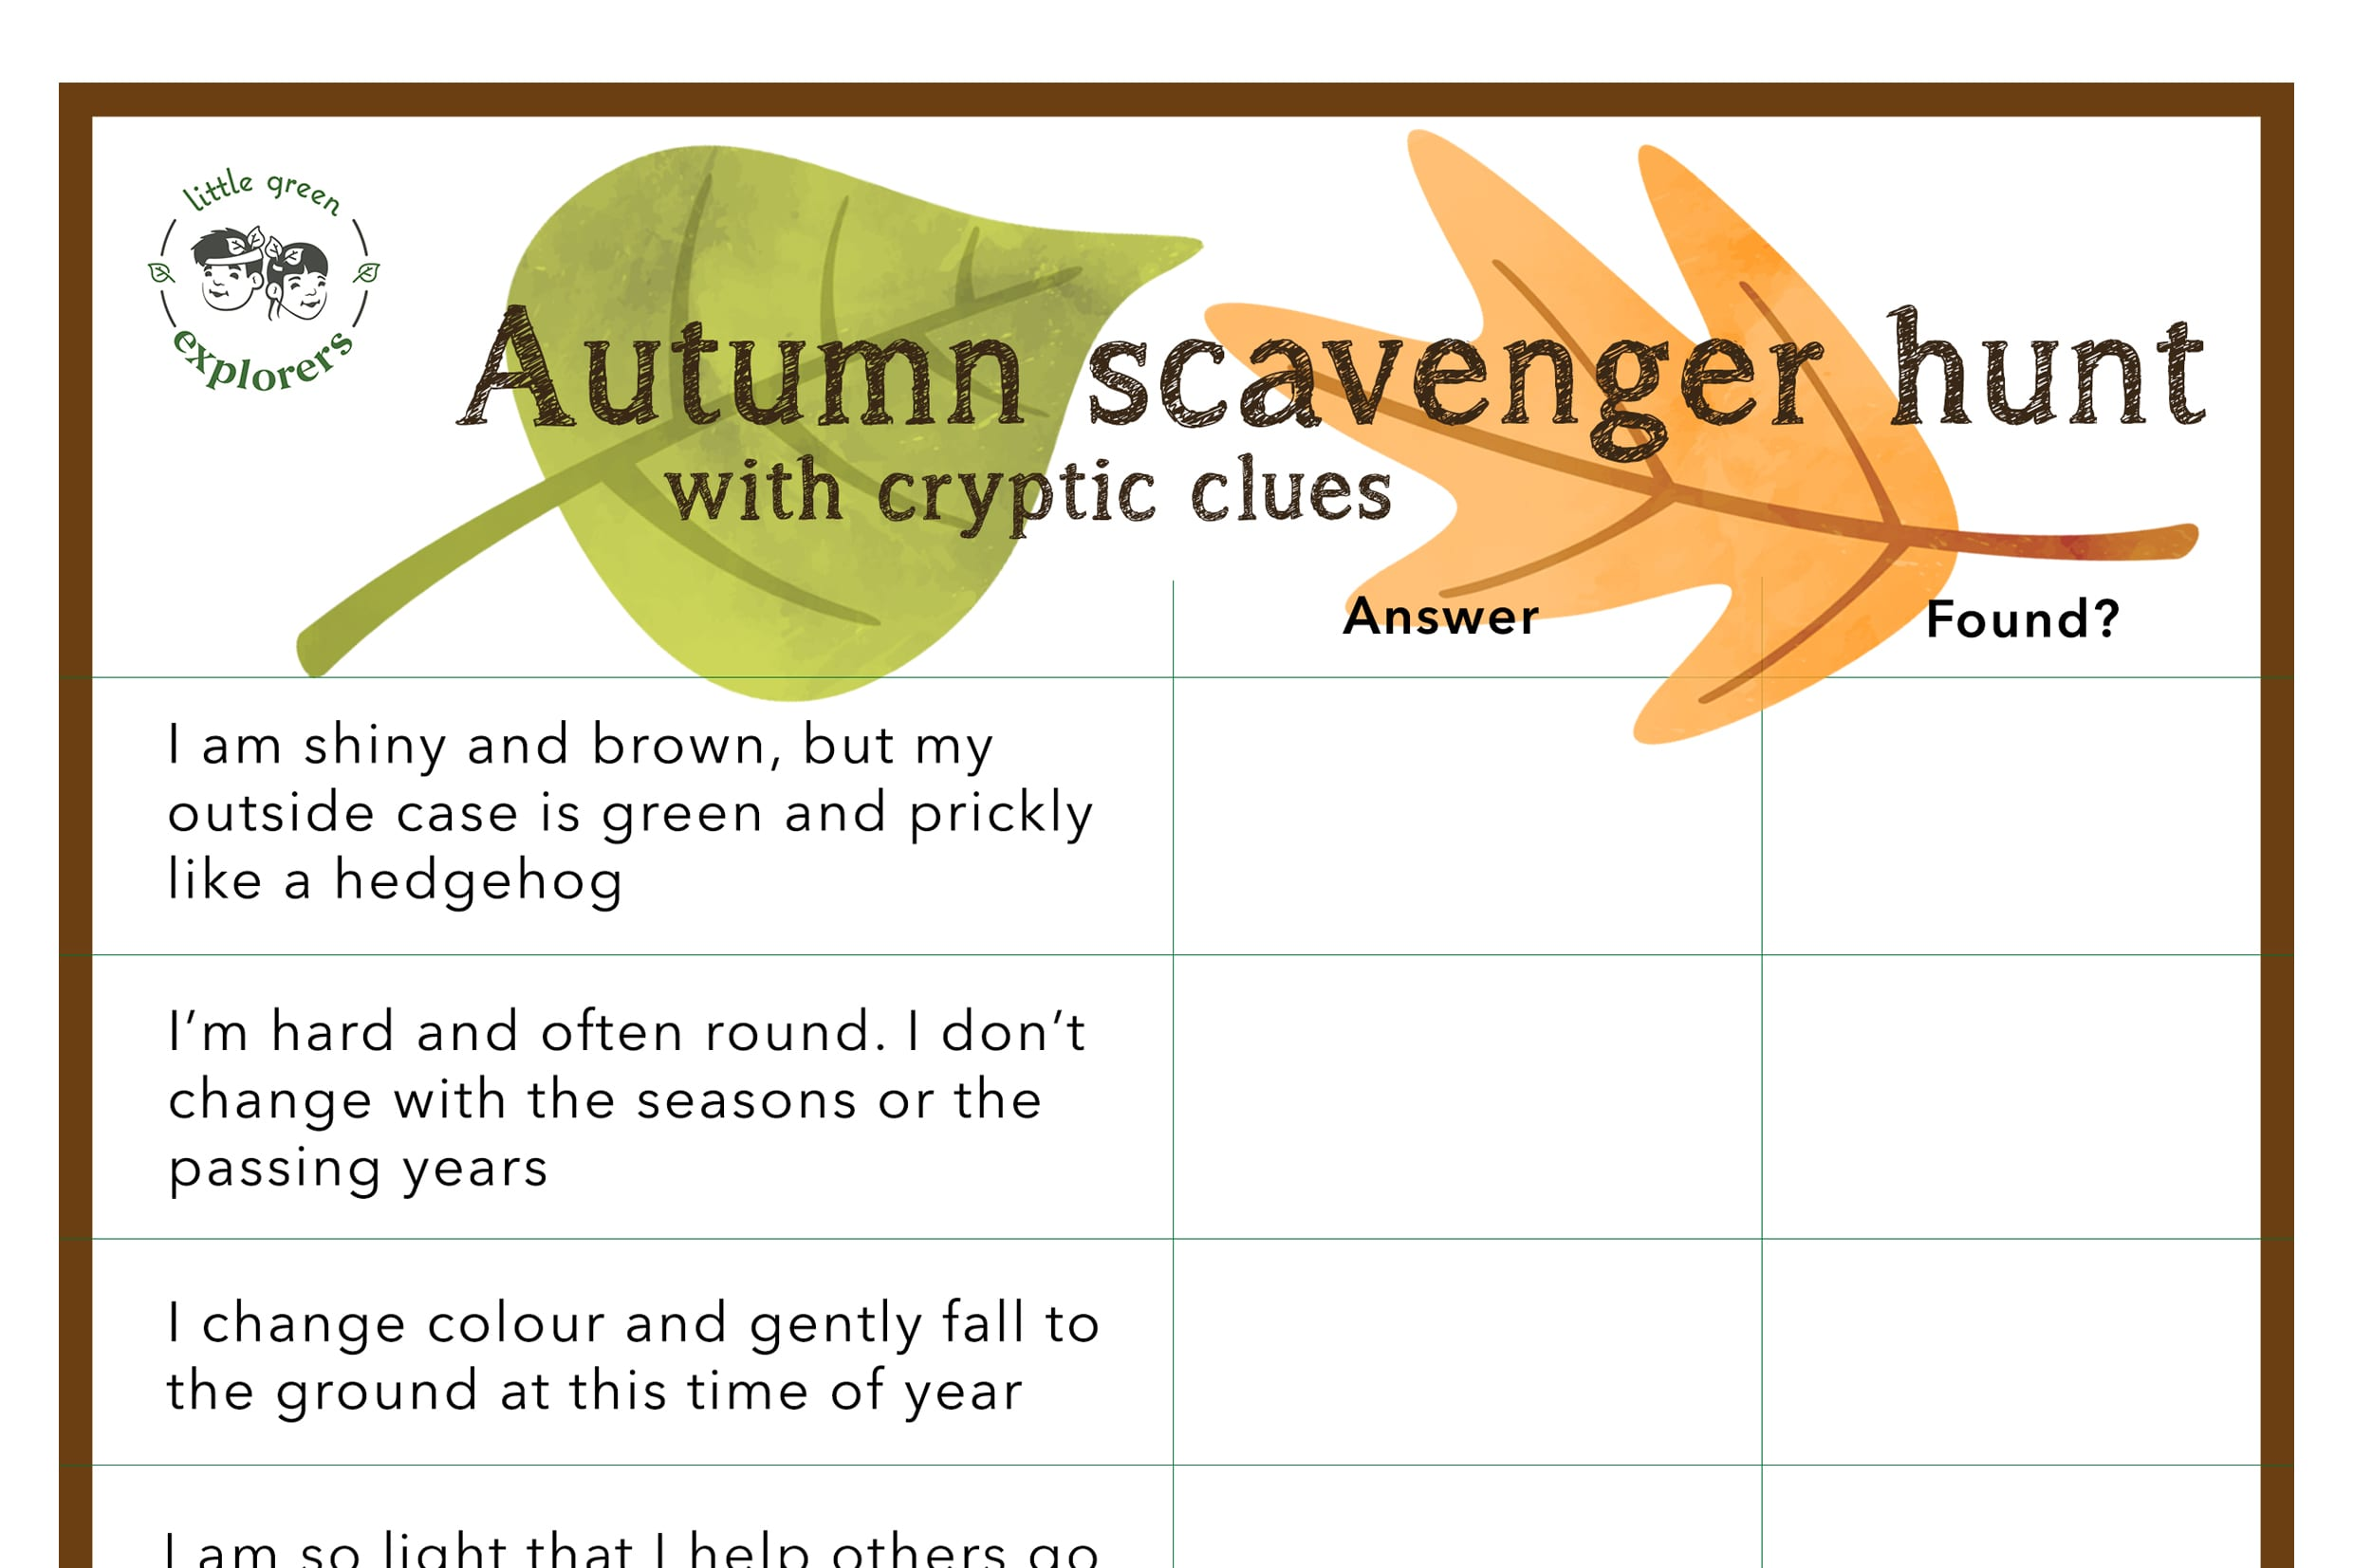 Free Printable Autumn Scavenger Hunt With Cryptic Clues Little Green Explorers Outdoor Learning Events And Activities